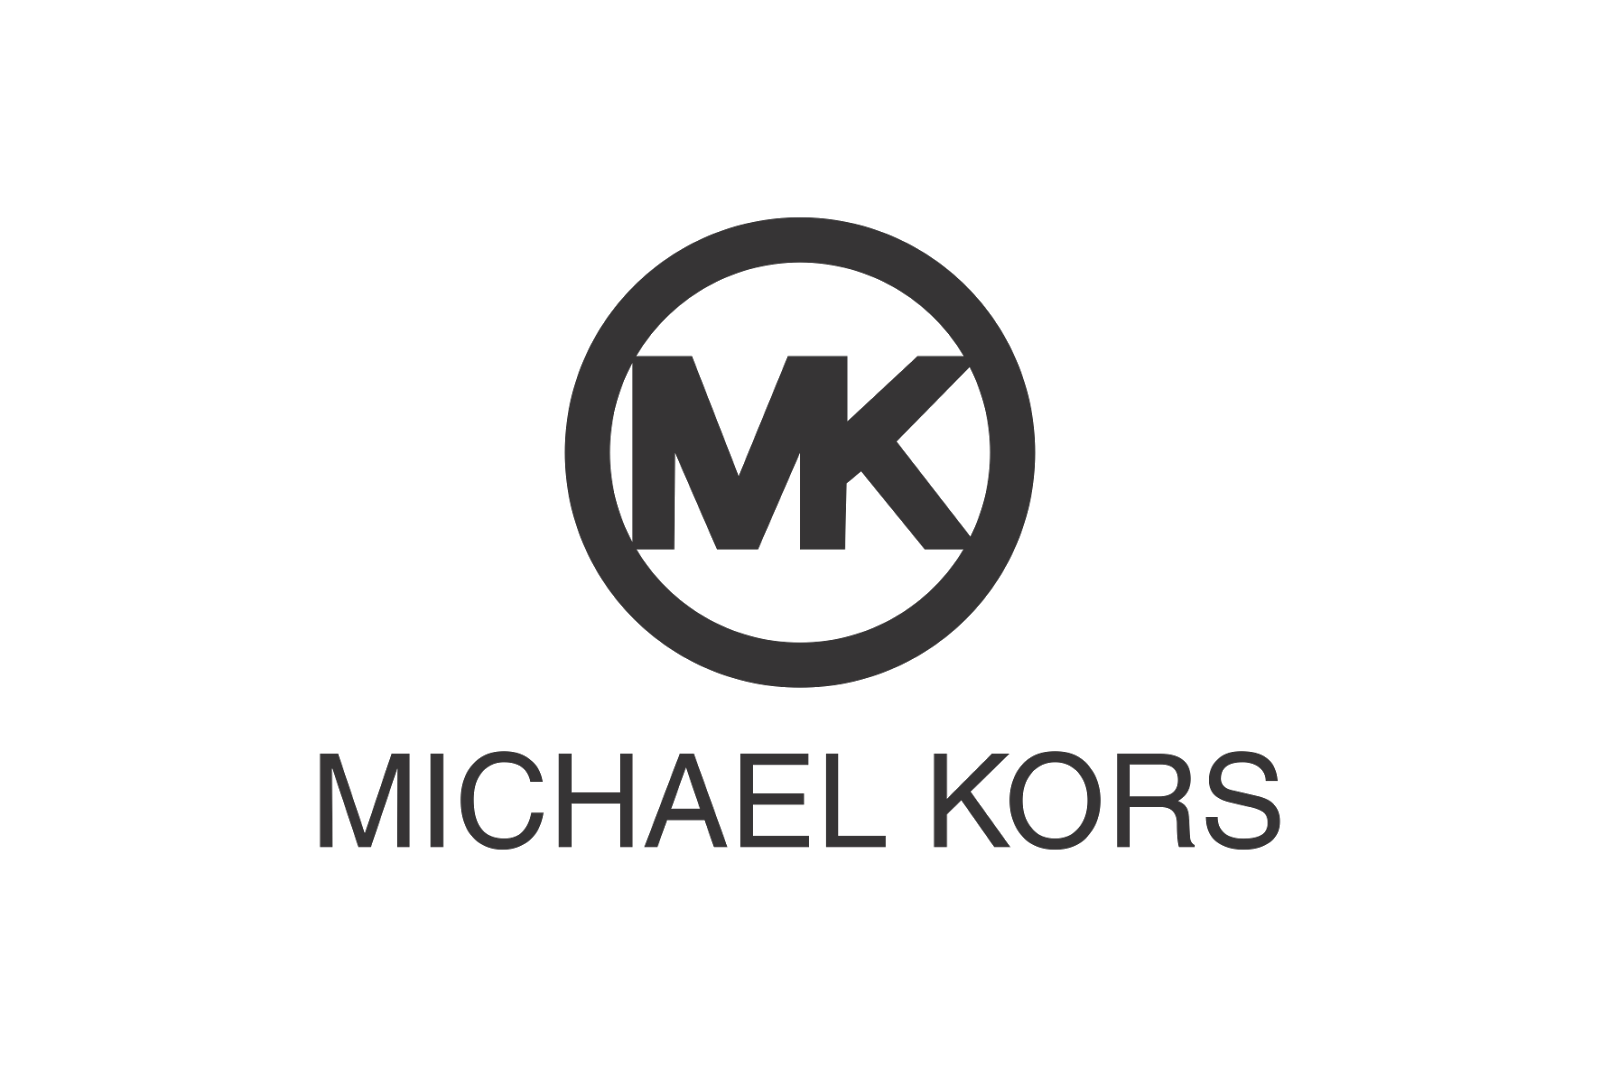 6pm MICHAEL KORS sale